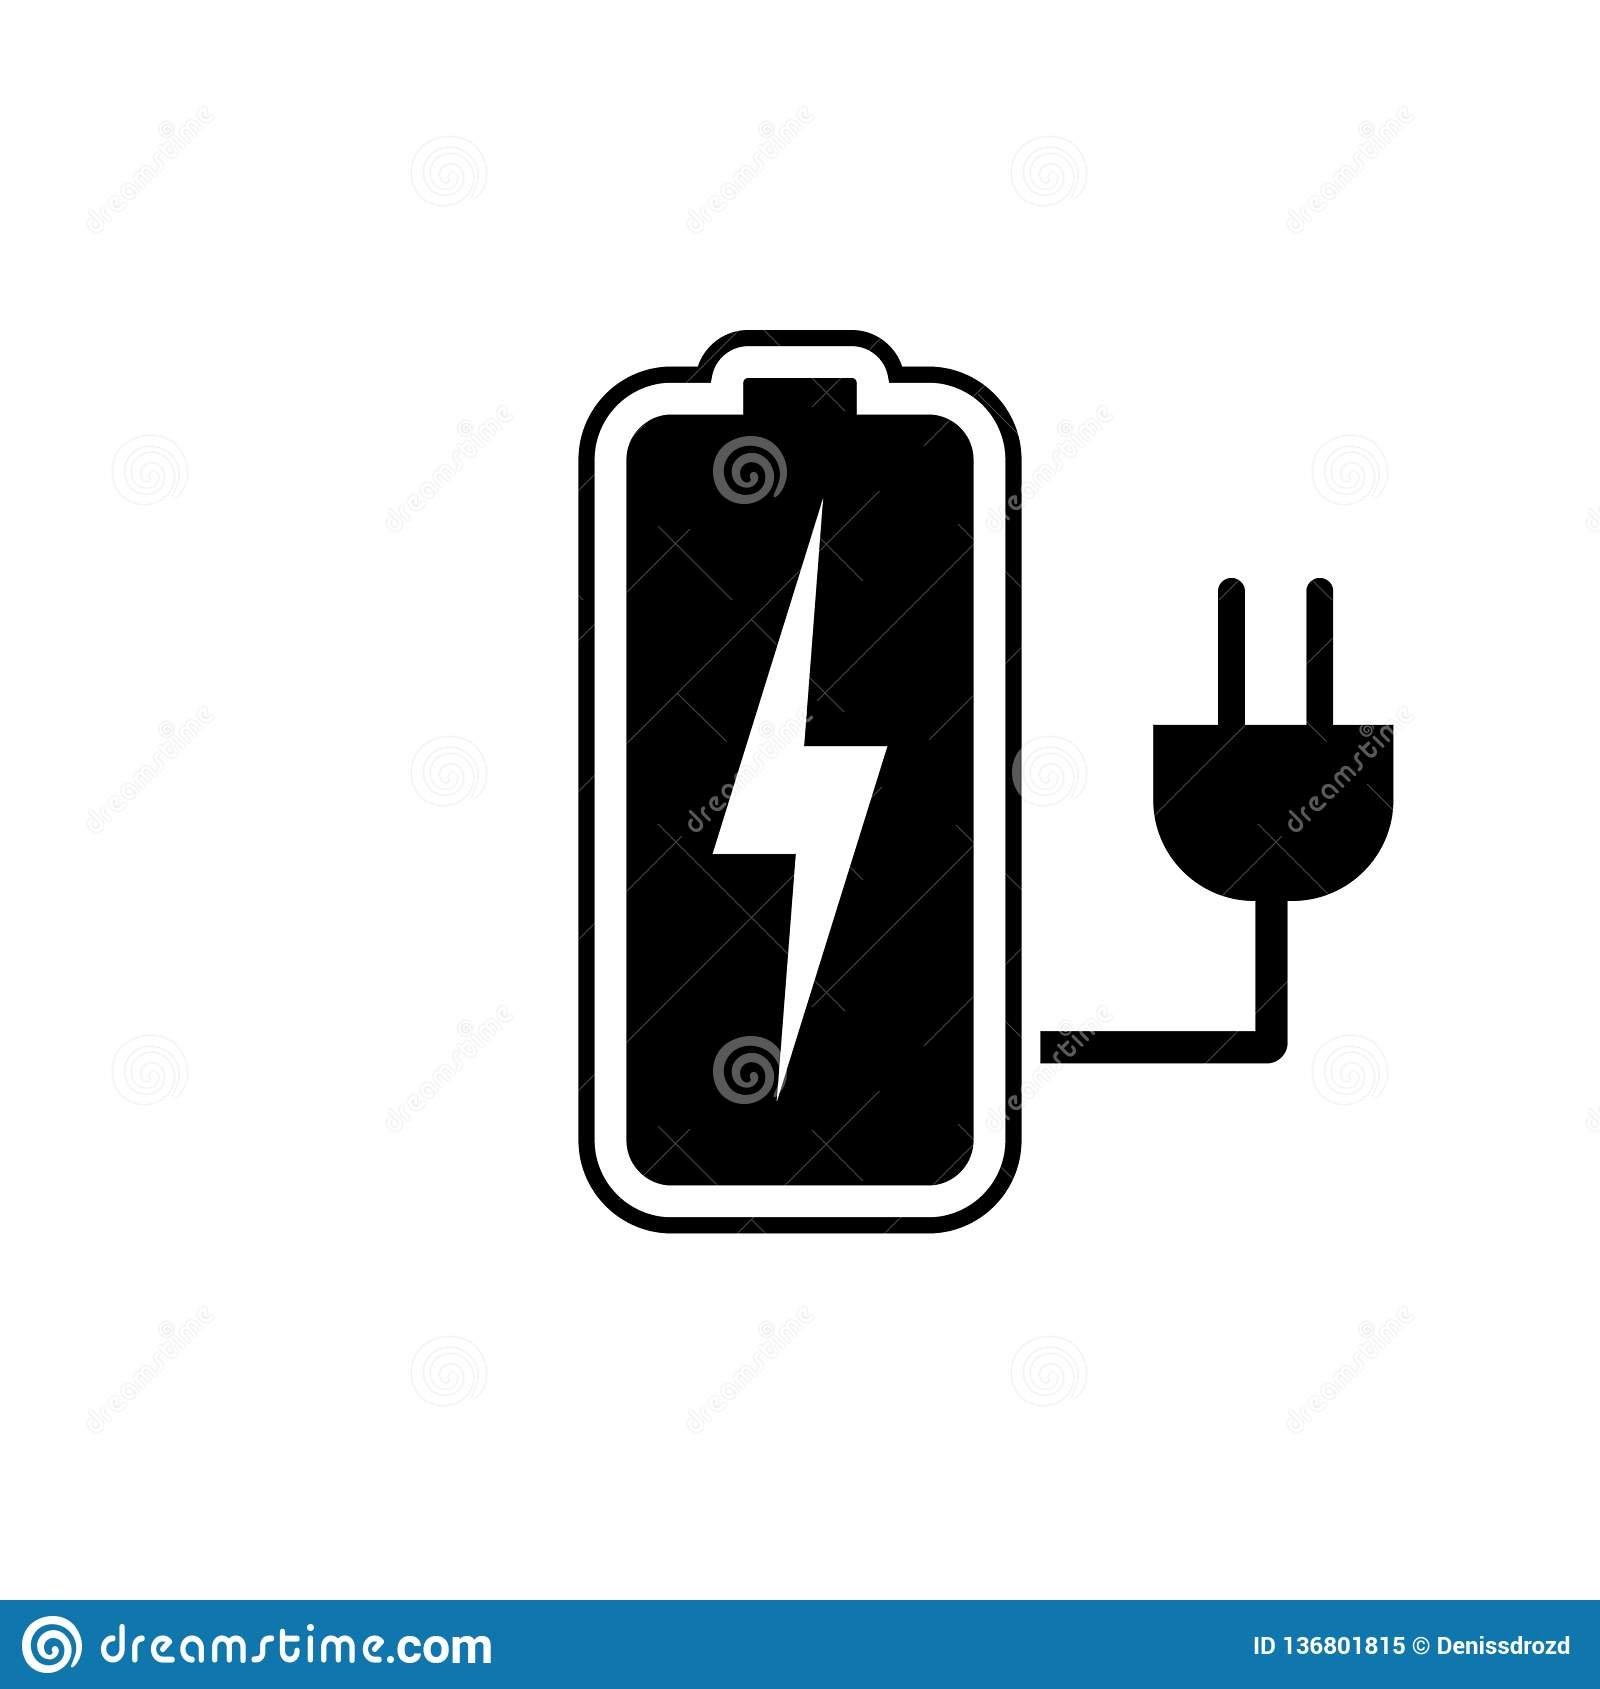 battery charging icon battery charger vector illustration icon stock illustration illustration of electricity load 136801815 https www dreamstime com battery charging icon battery vector illustration icon charger vector illustration icon battery charging icon battery charger image136801815